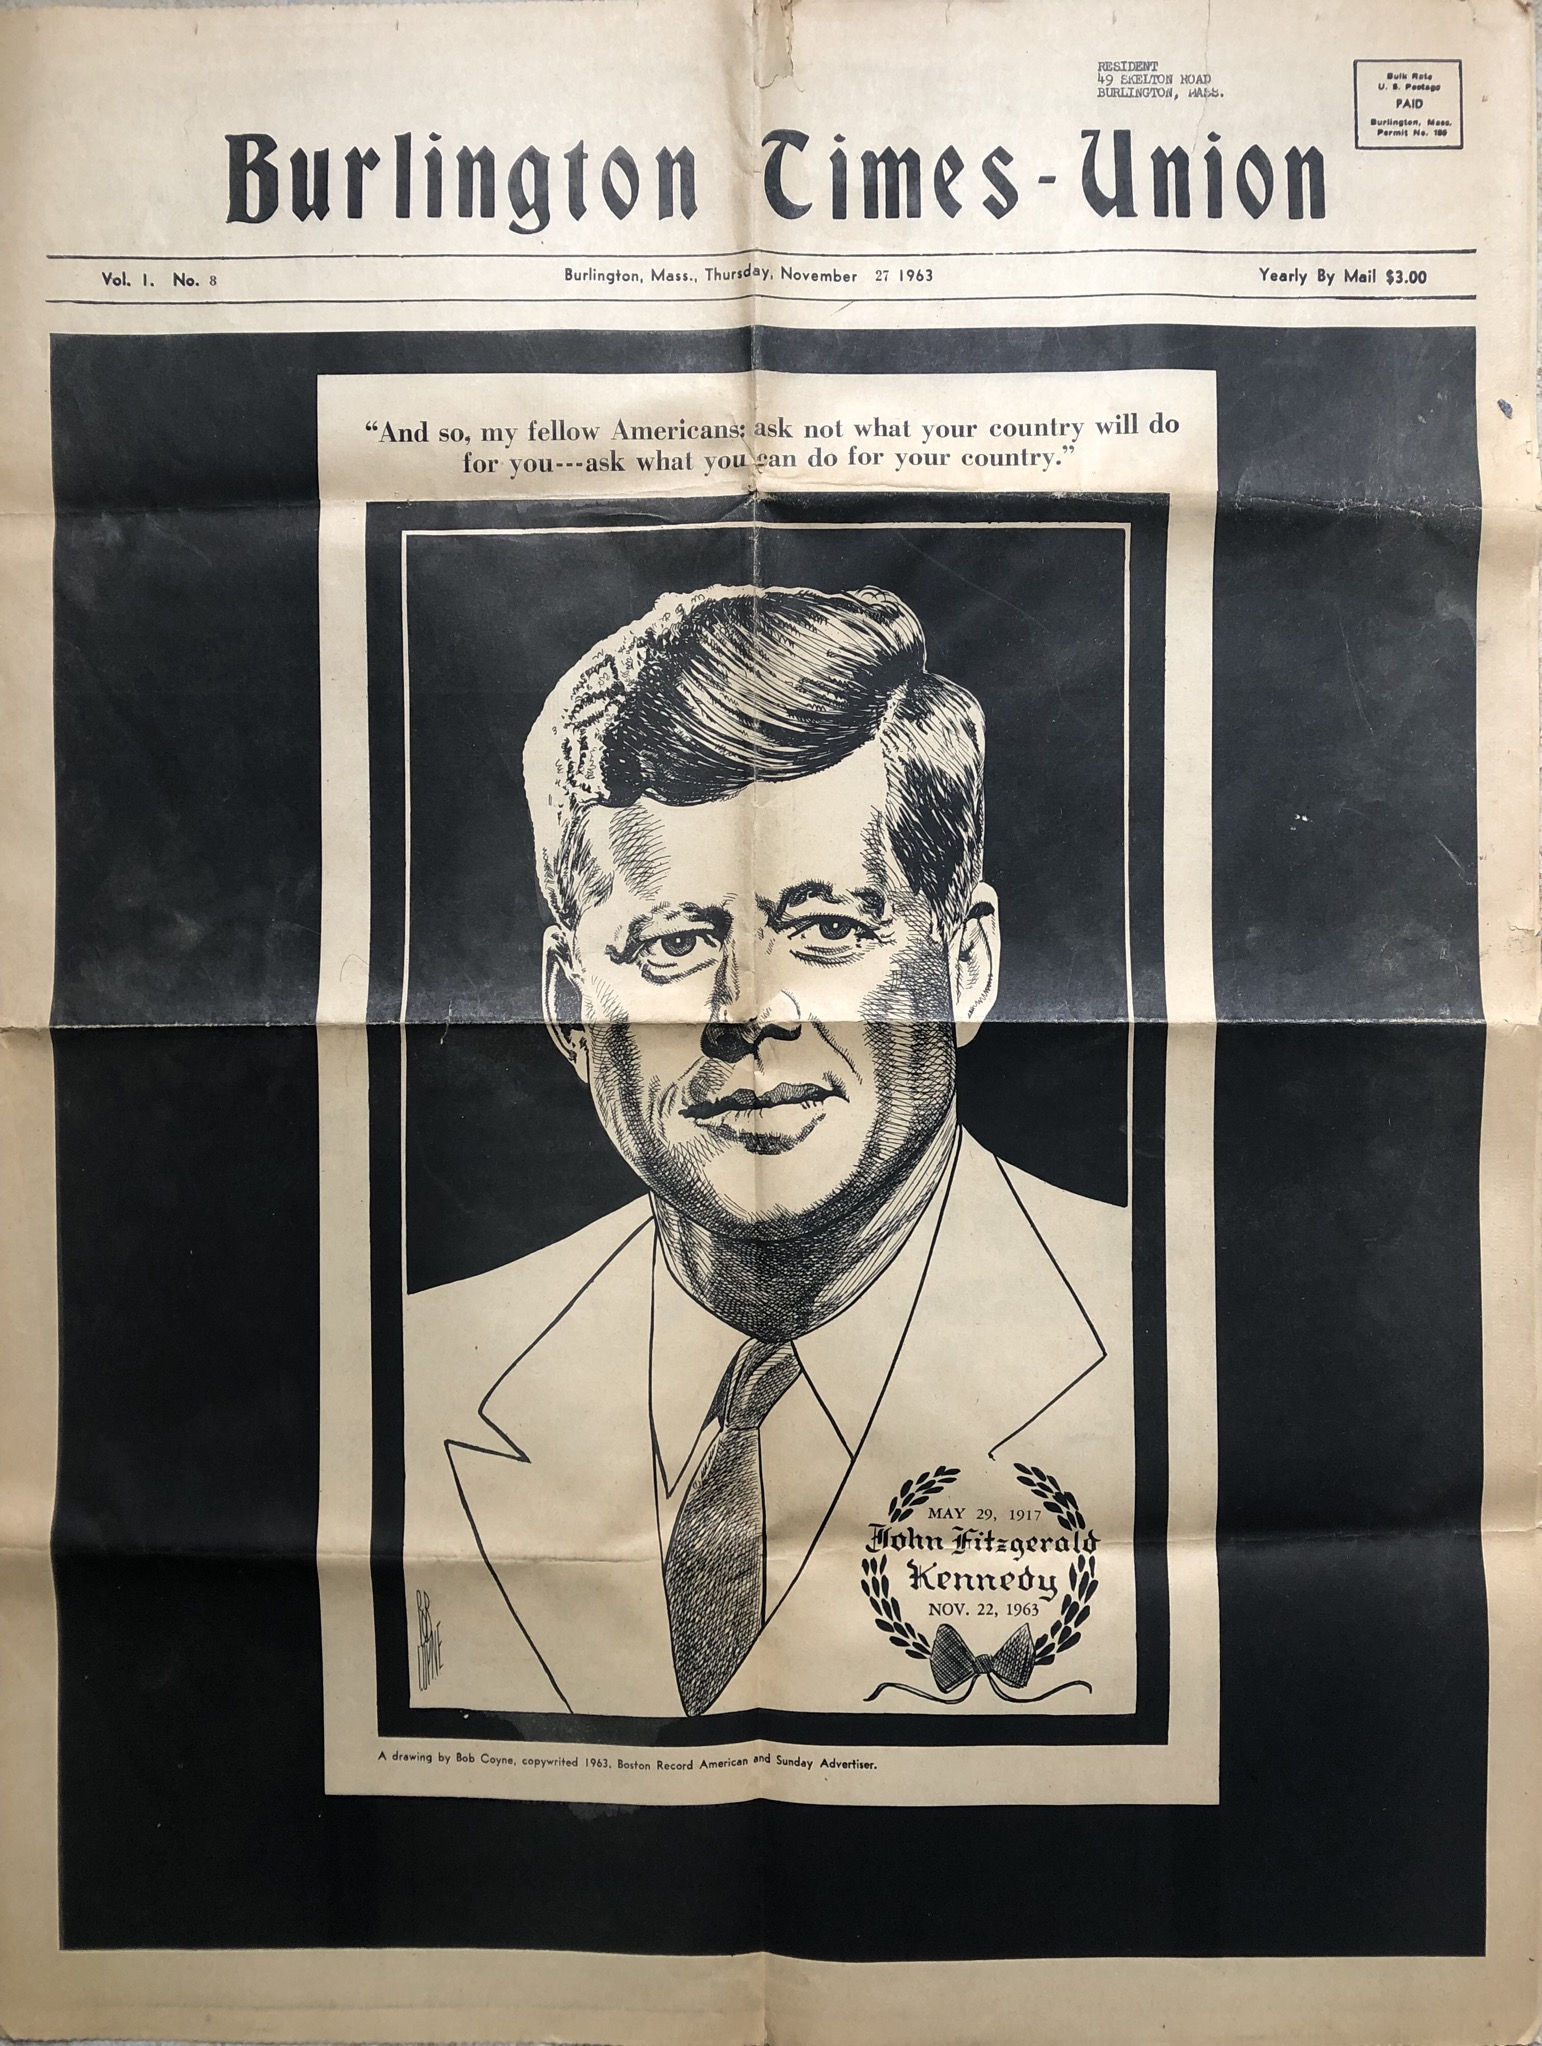 JFK full-page tribute Burlington Times-Union